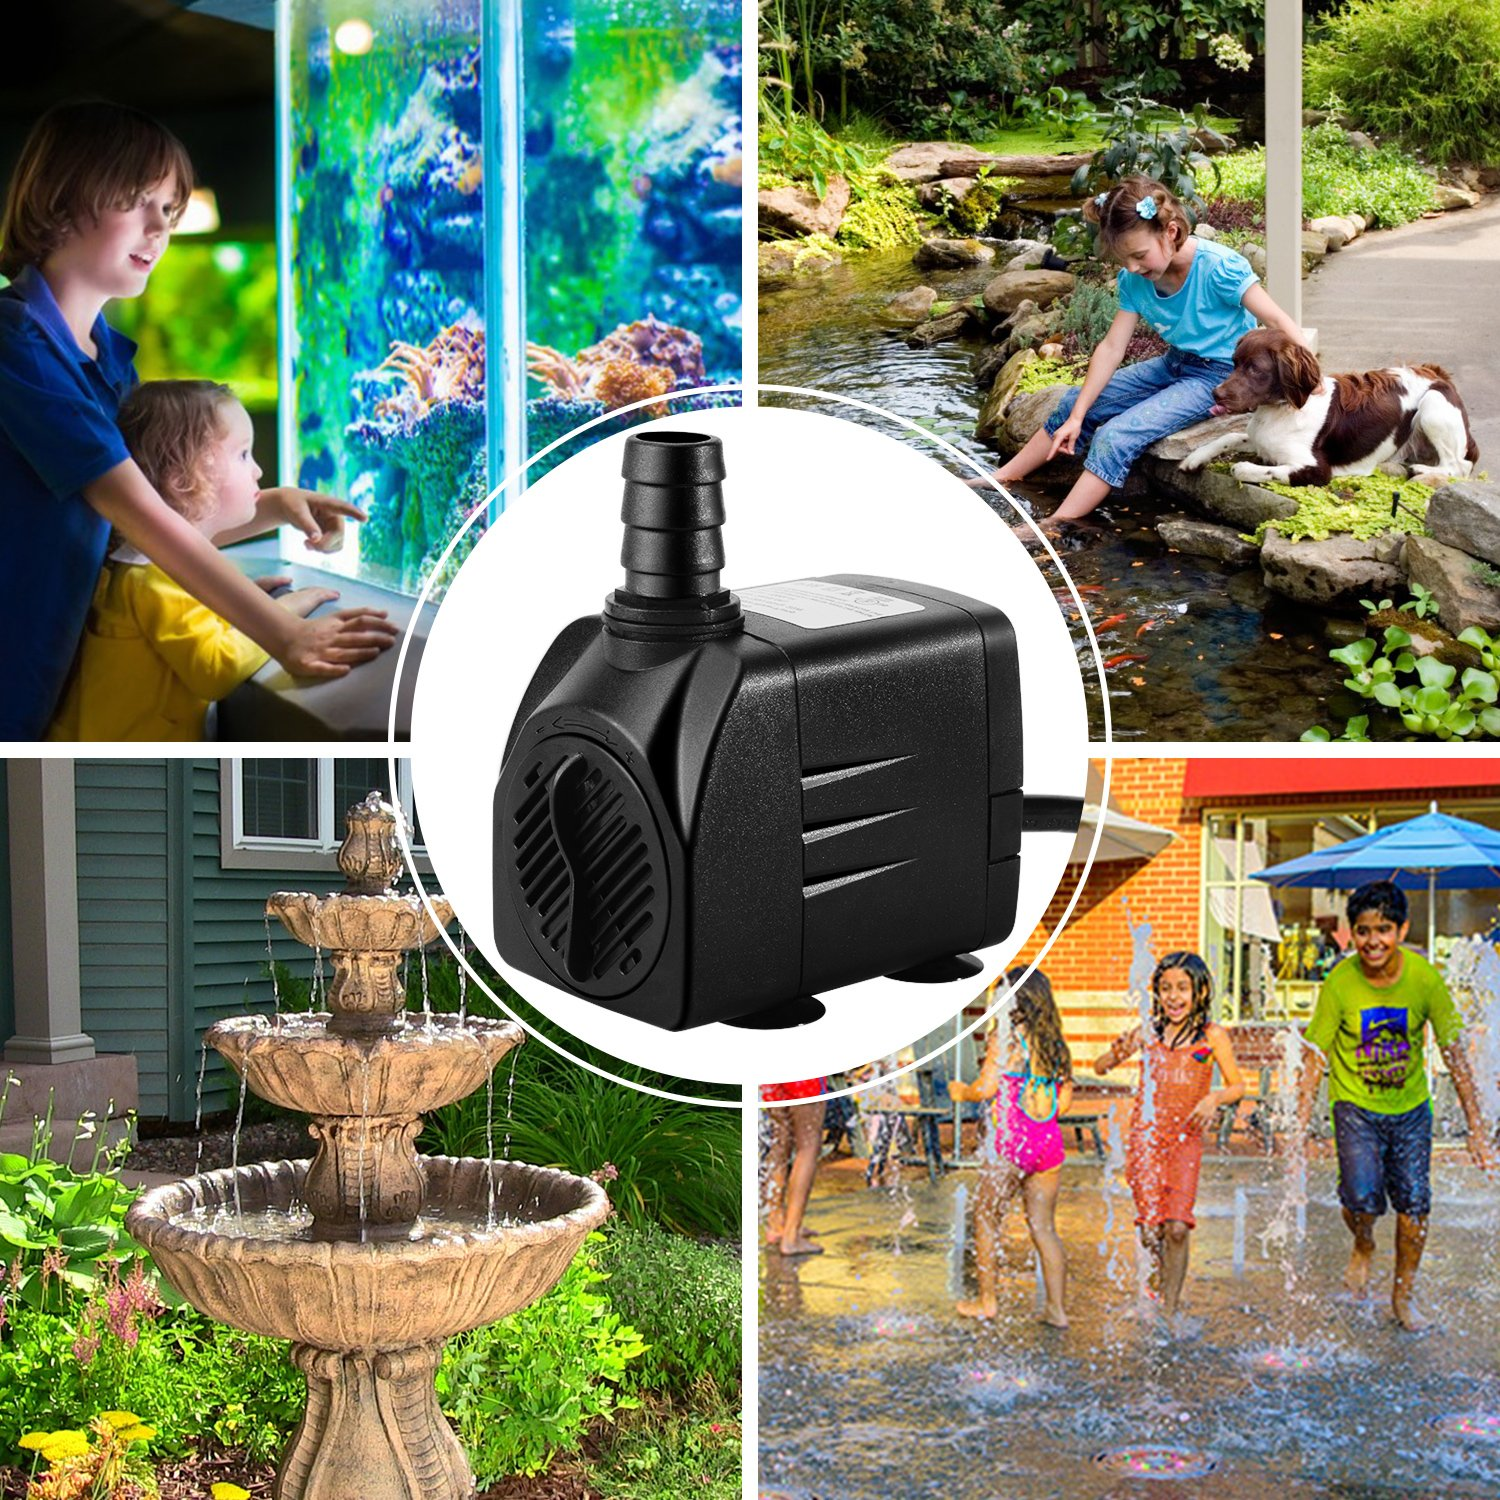 Pond Water Pump Hydroponics Fish Tank Fountain Pump 3 Nozzles for Aquarium 400GPH Submersible Water Pump Backyard Fountain Durable 25W Outdoor Fountain Water Pump with 6.5ft Power Cord